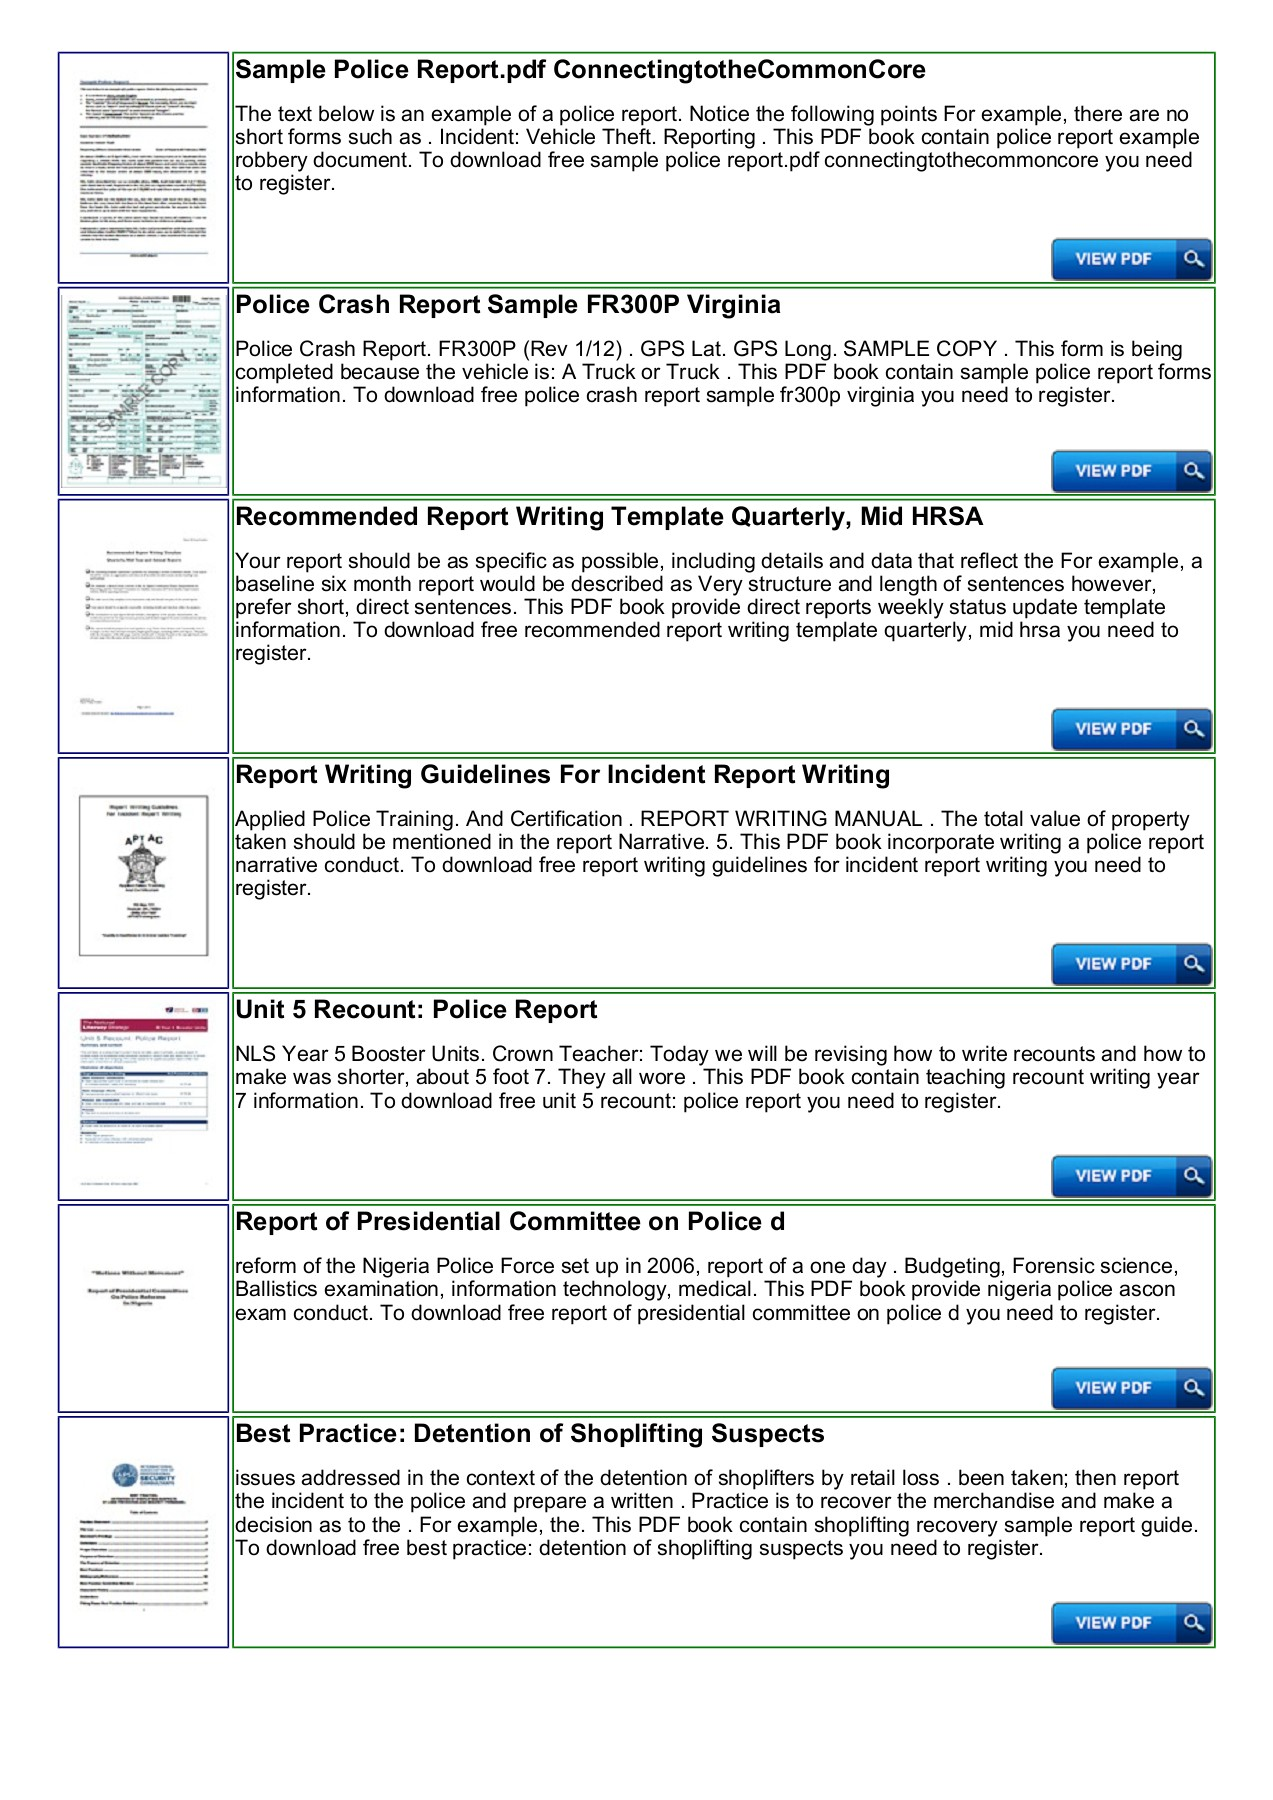 Police Shoplifting Report Writing Template Sample Pages 1 - 4 - Text